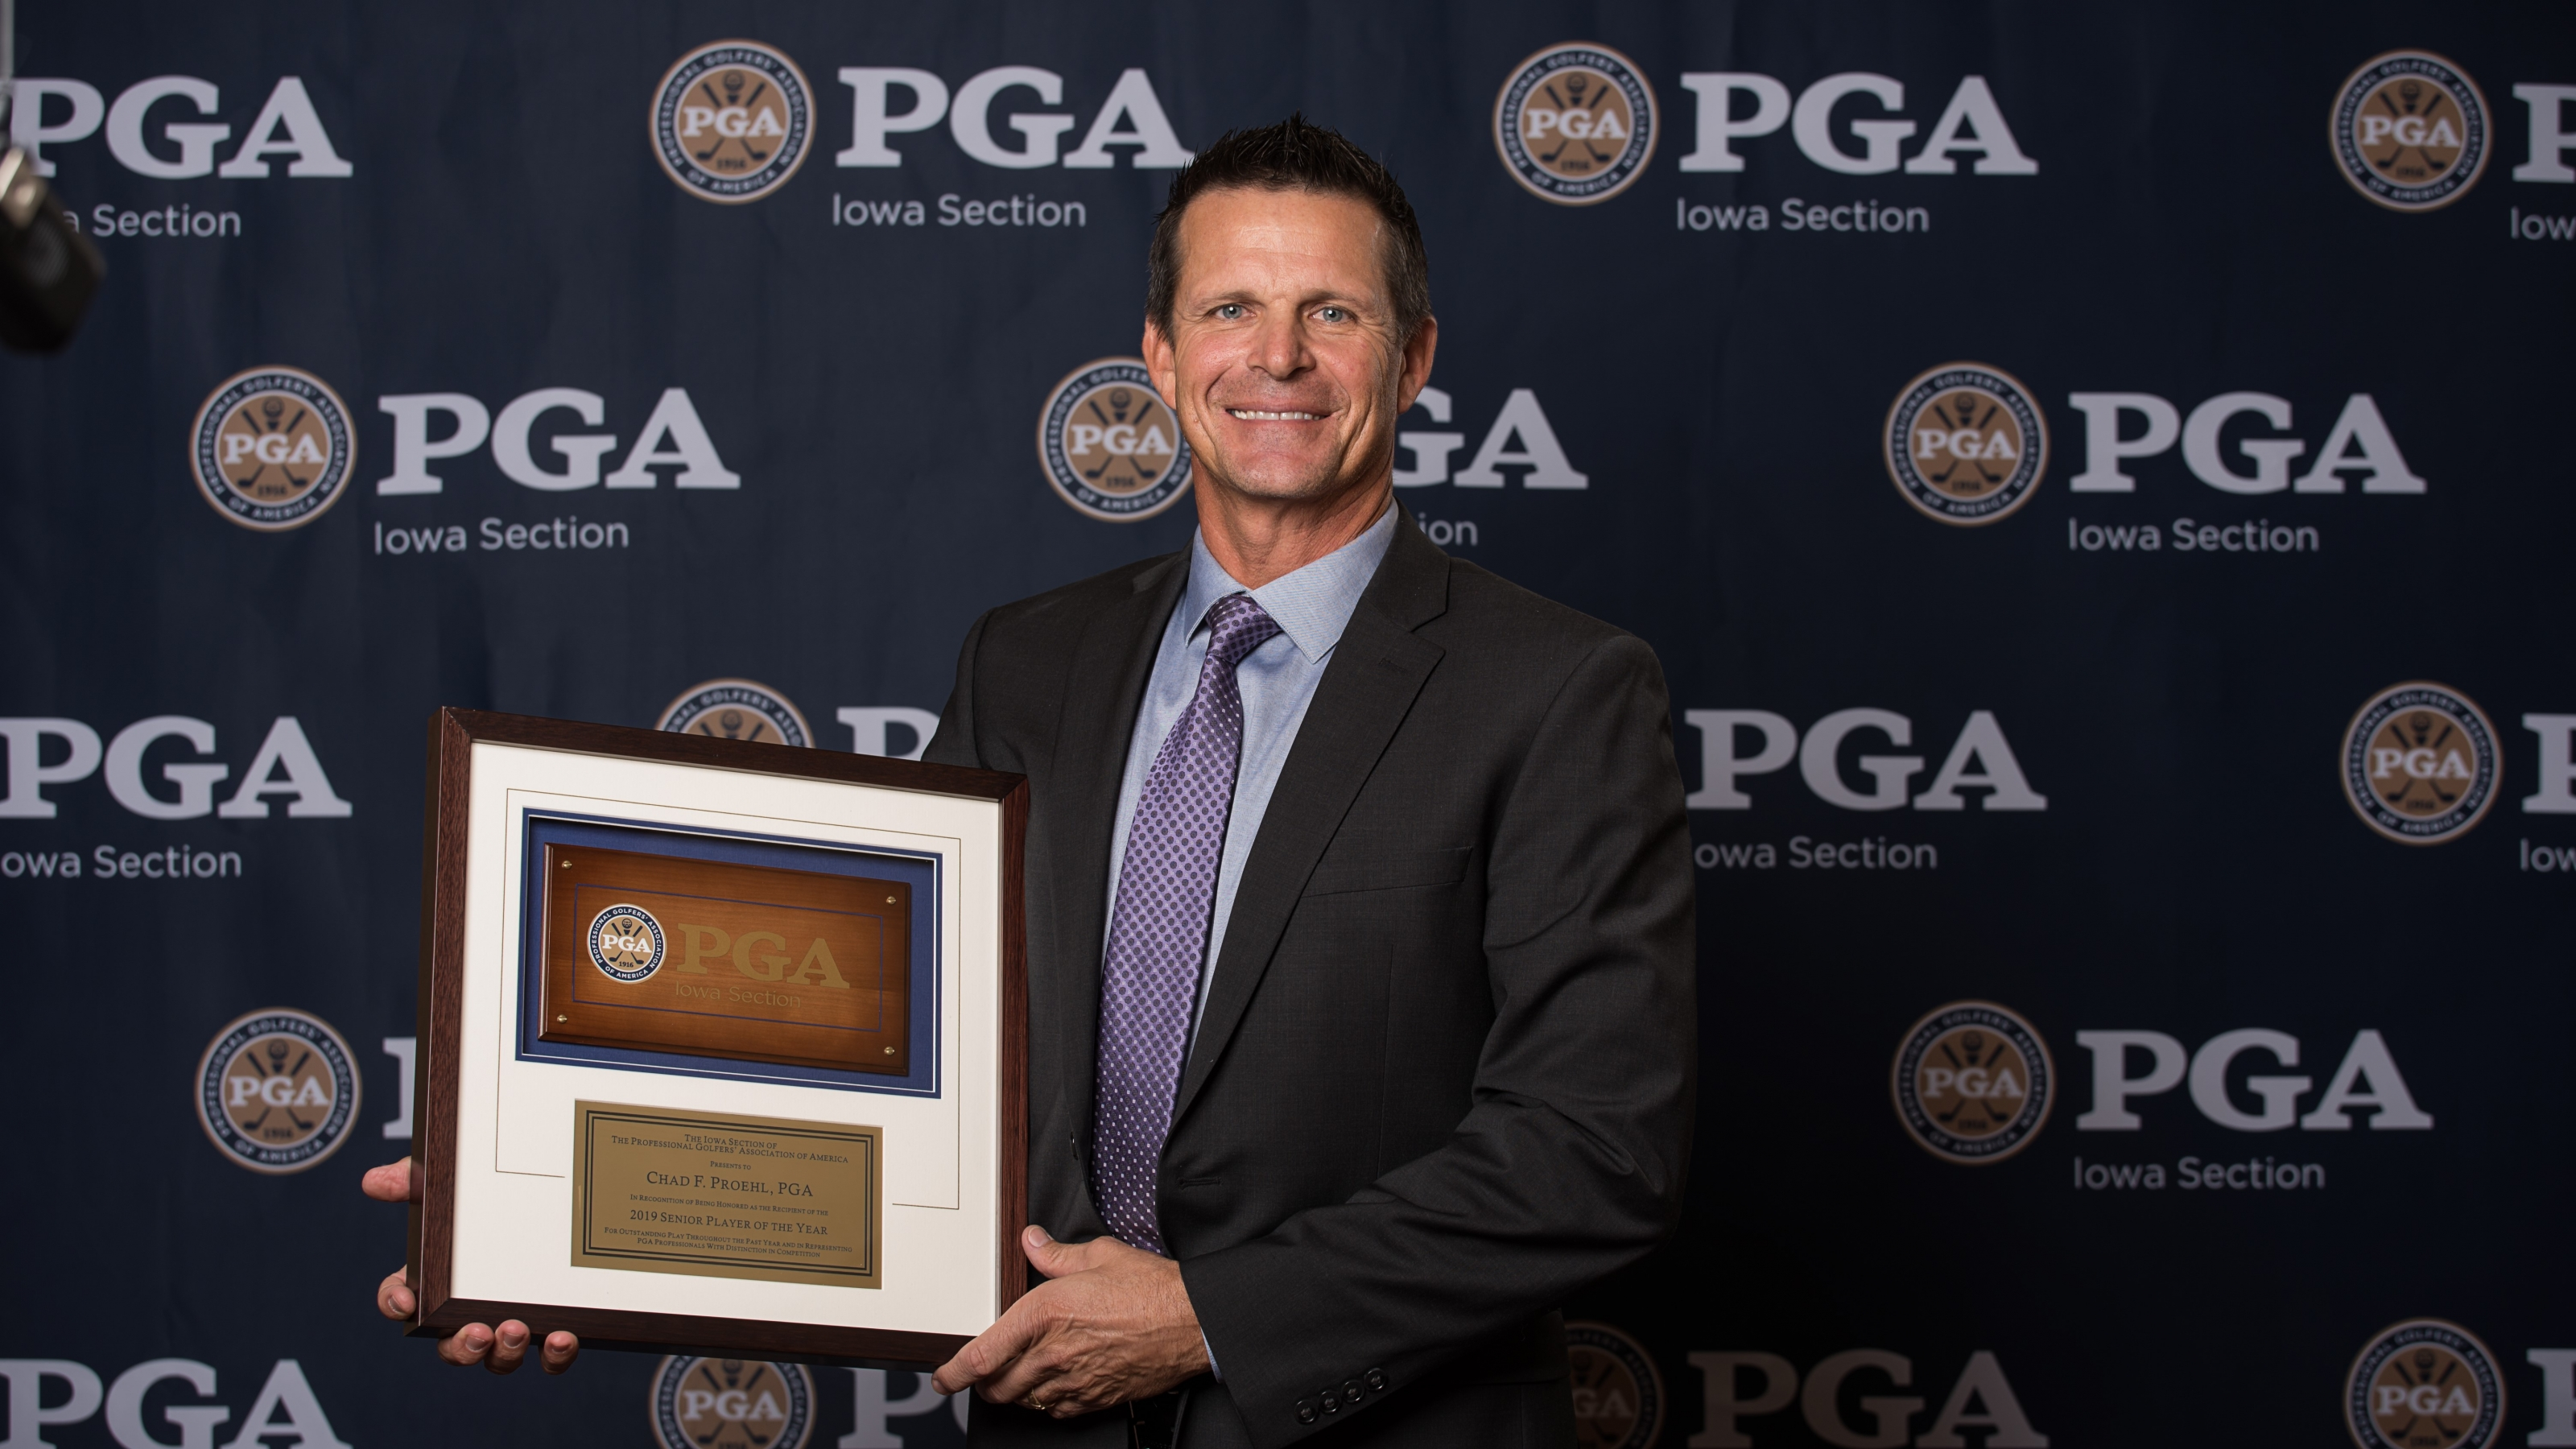 Proehl finishes Tied for 15th at PGA Senior Stroke Play Championship